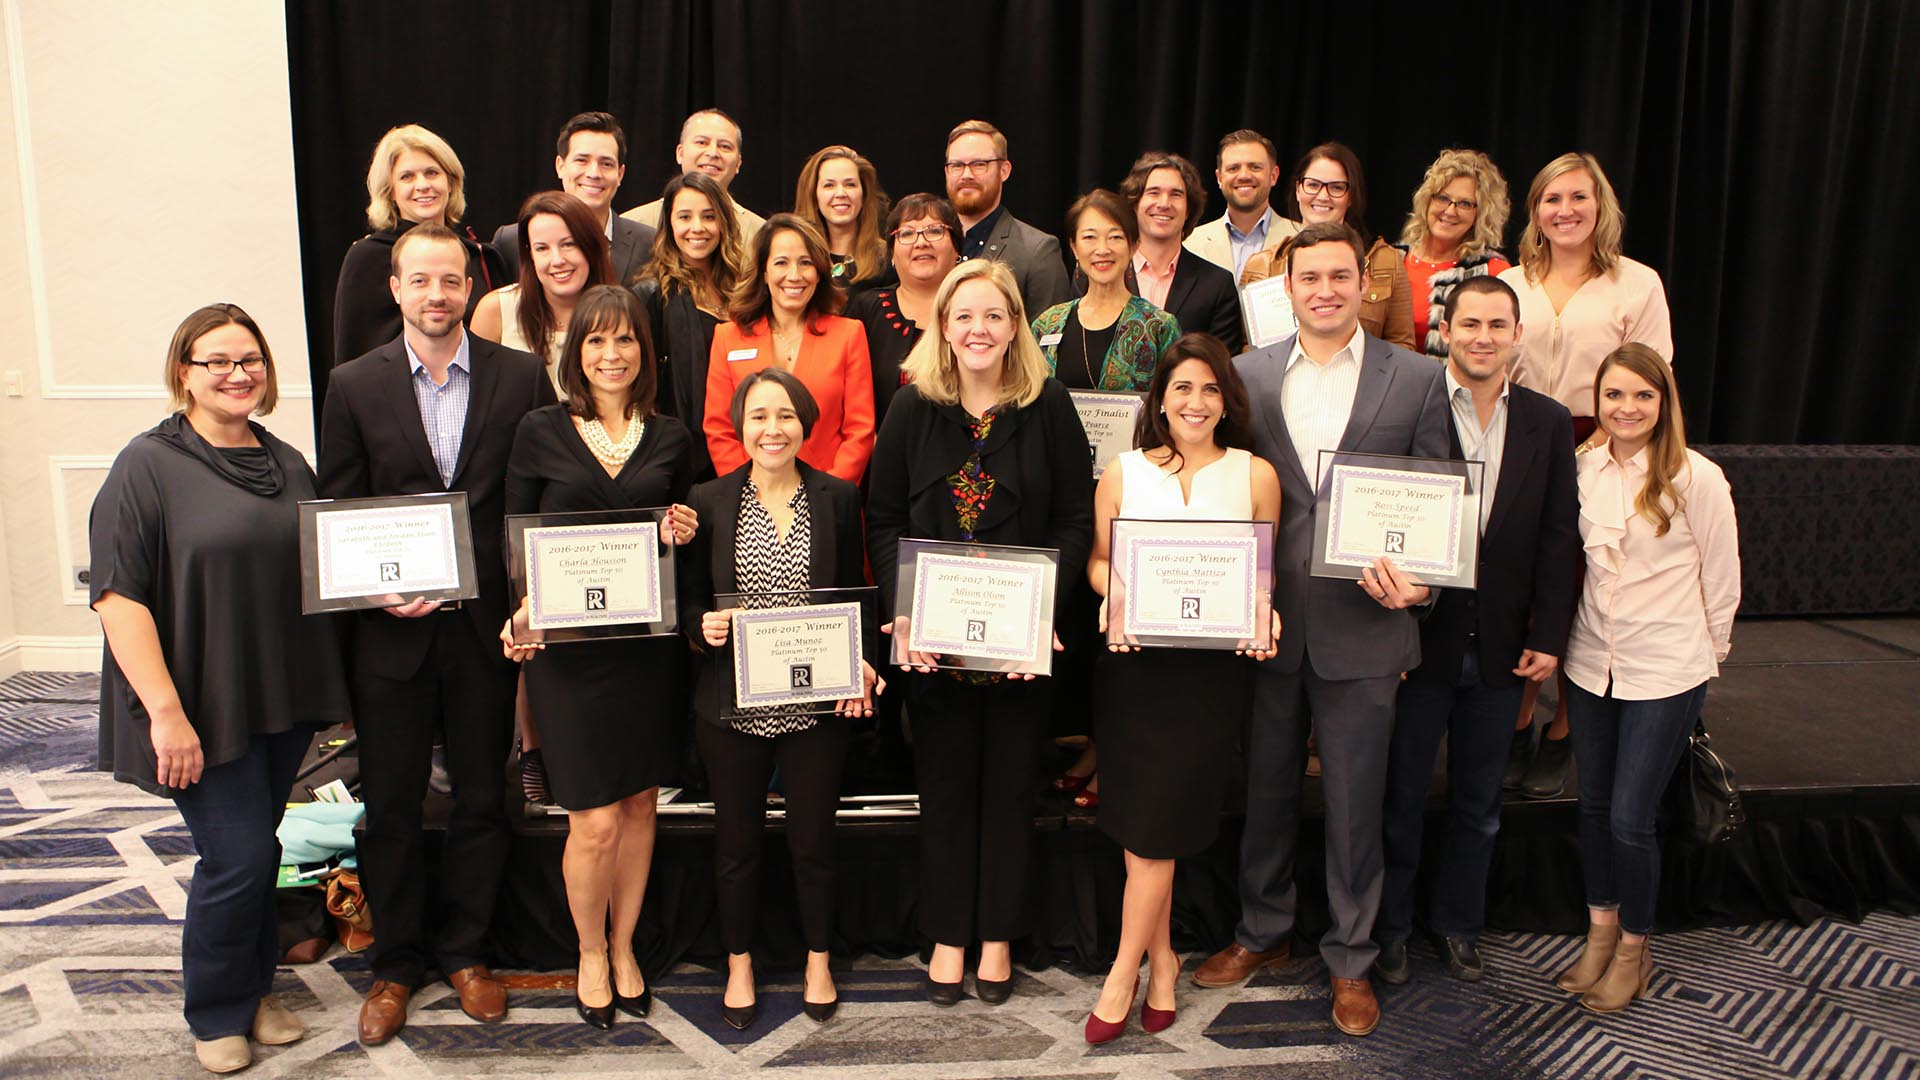 Image of Realty Austin PT50 Award Winners and Finalists